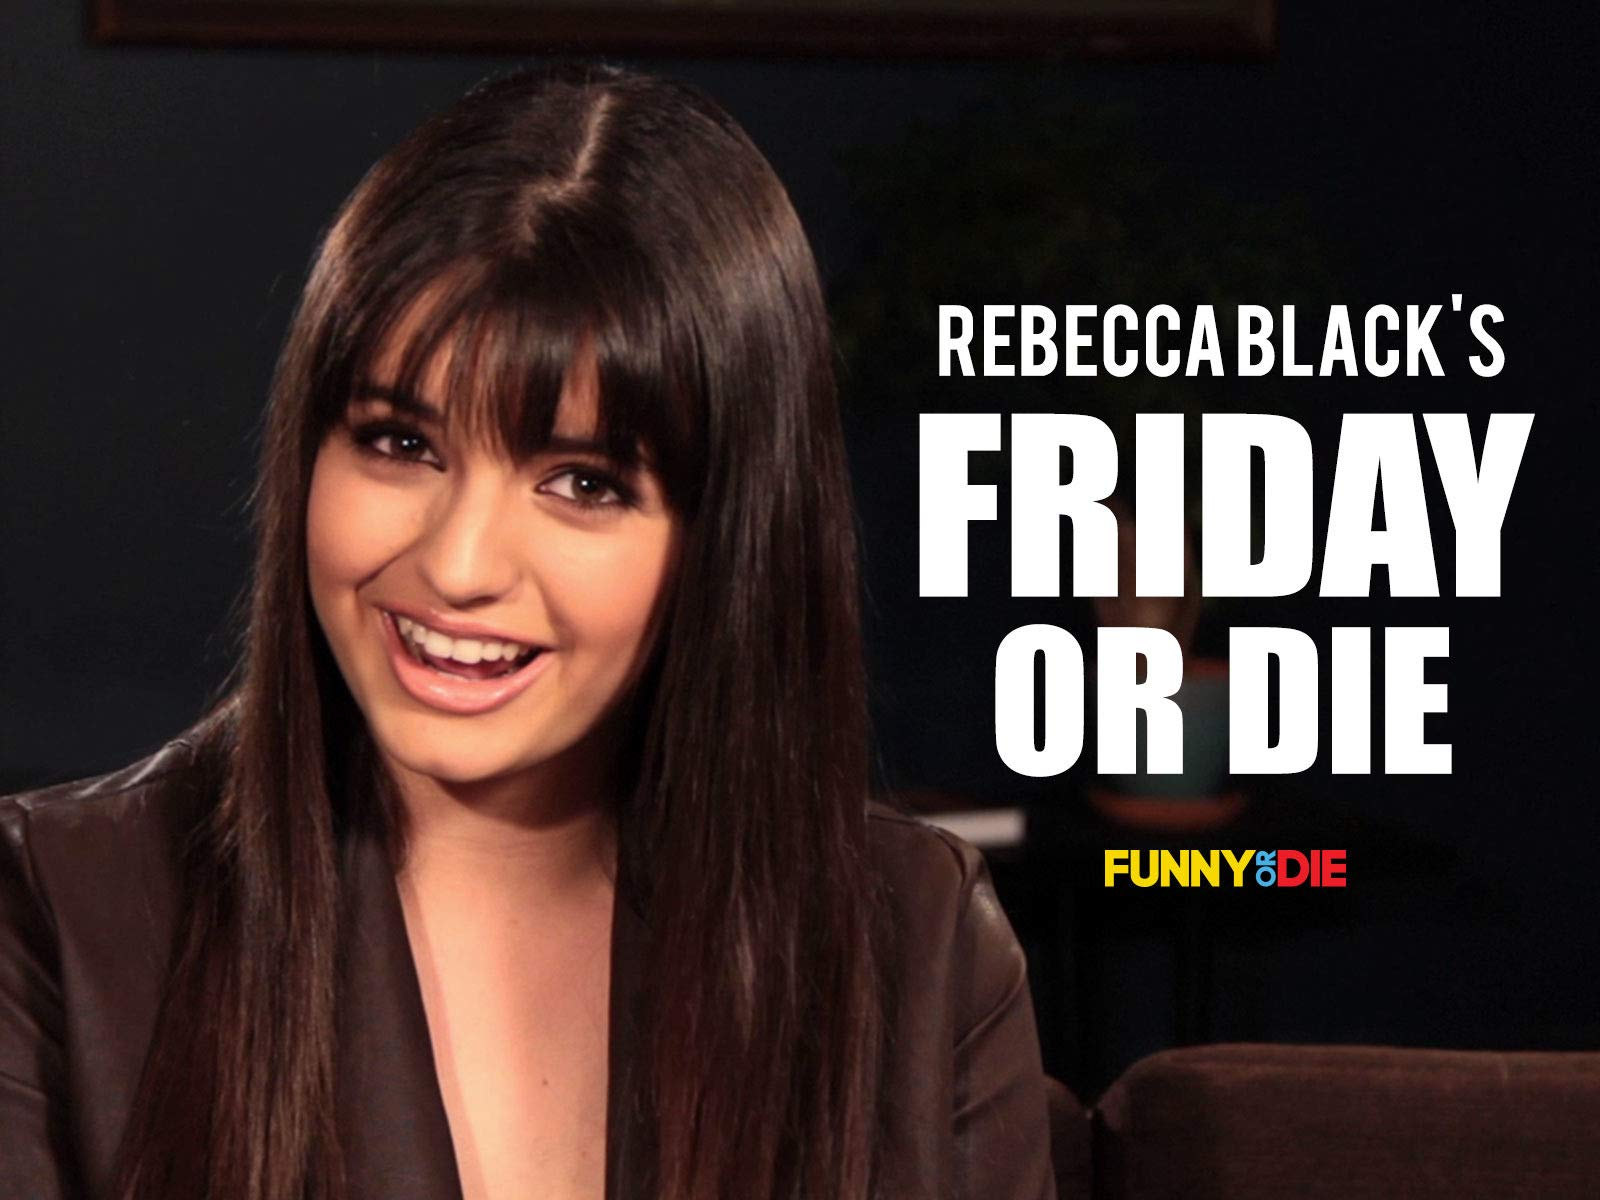 Rebecca Black's Friday Or Die - Season 1